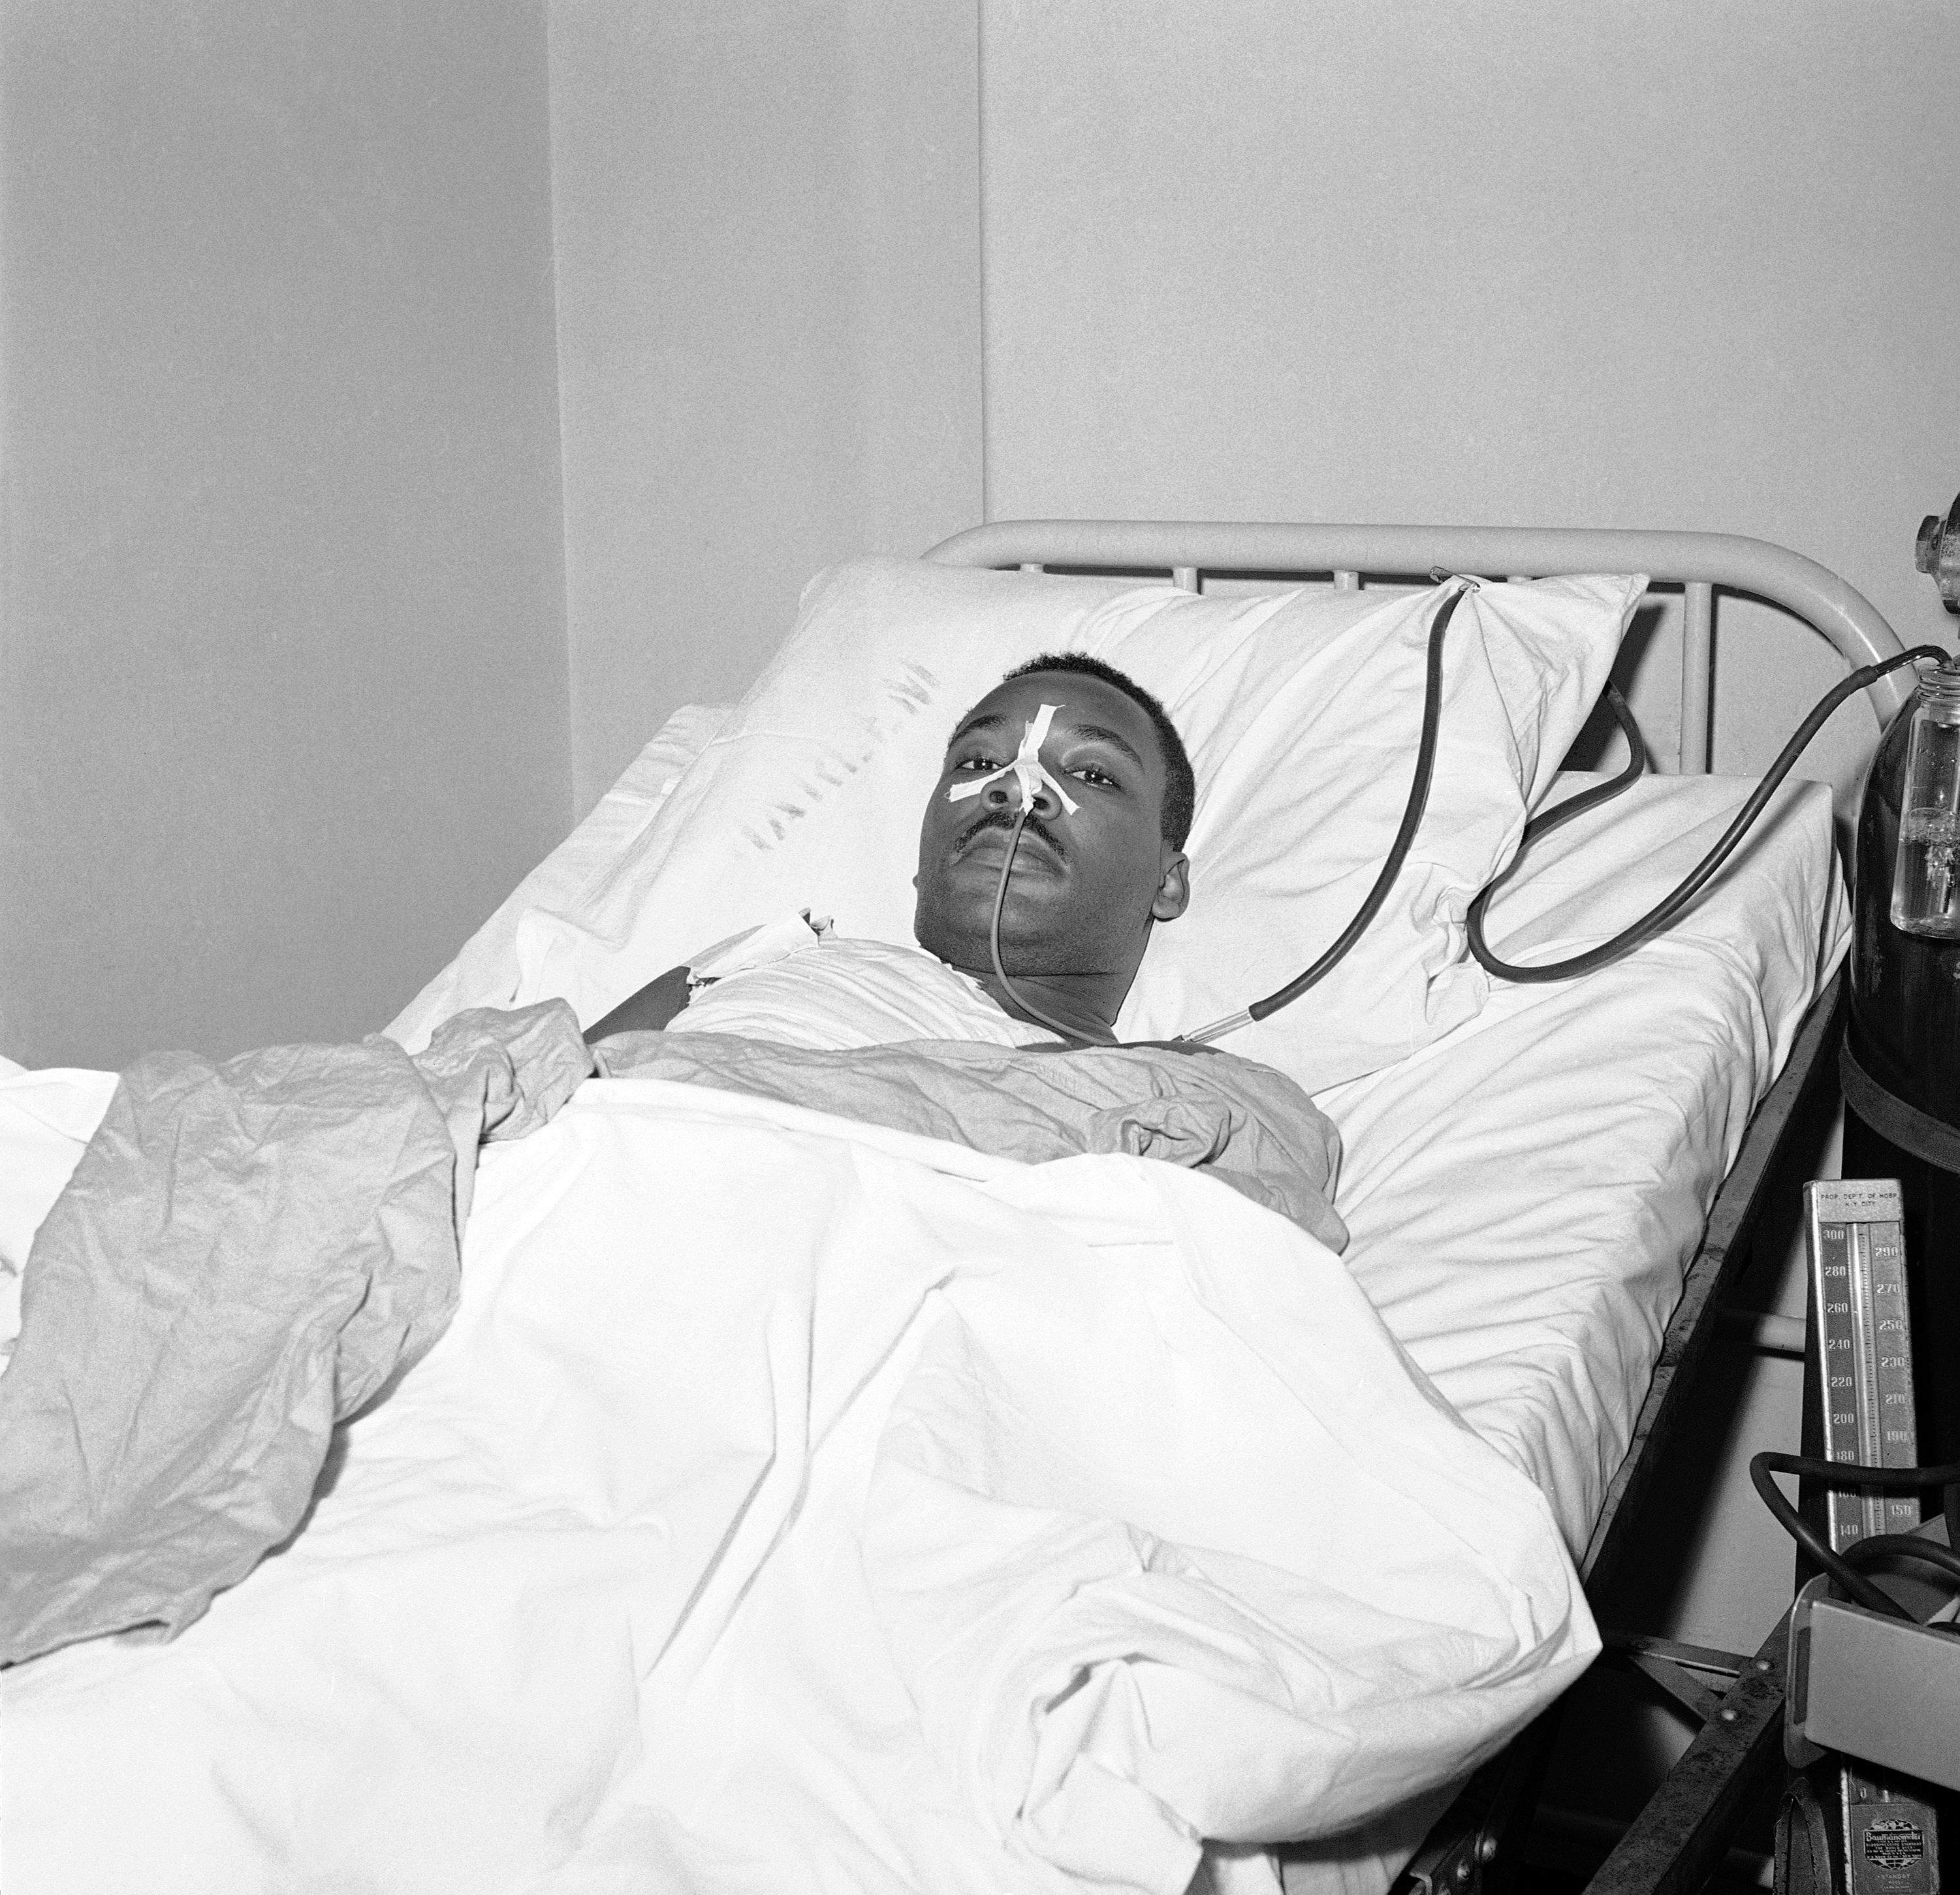 The Rev. Martin Luther King Jr., African American integration leader, in bed